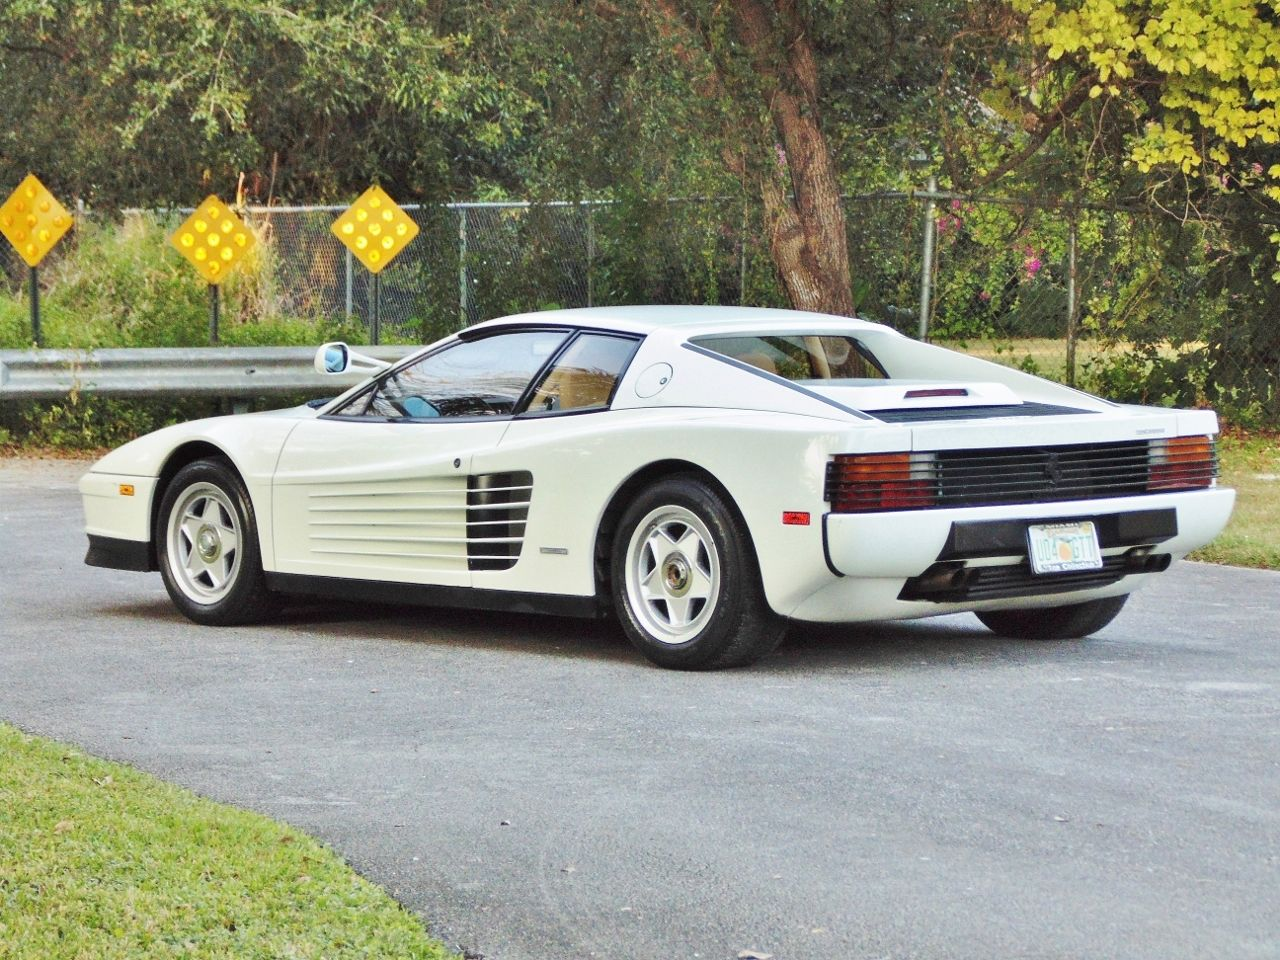 Miami Vice Ferrari Testarossa For Sale (5)